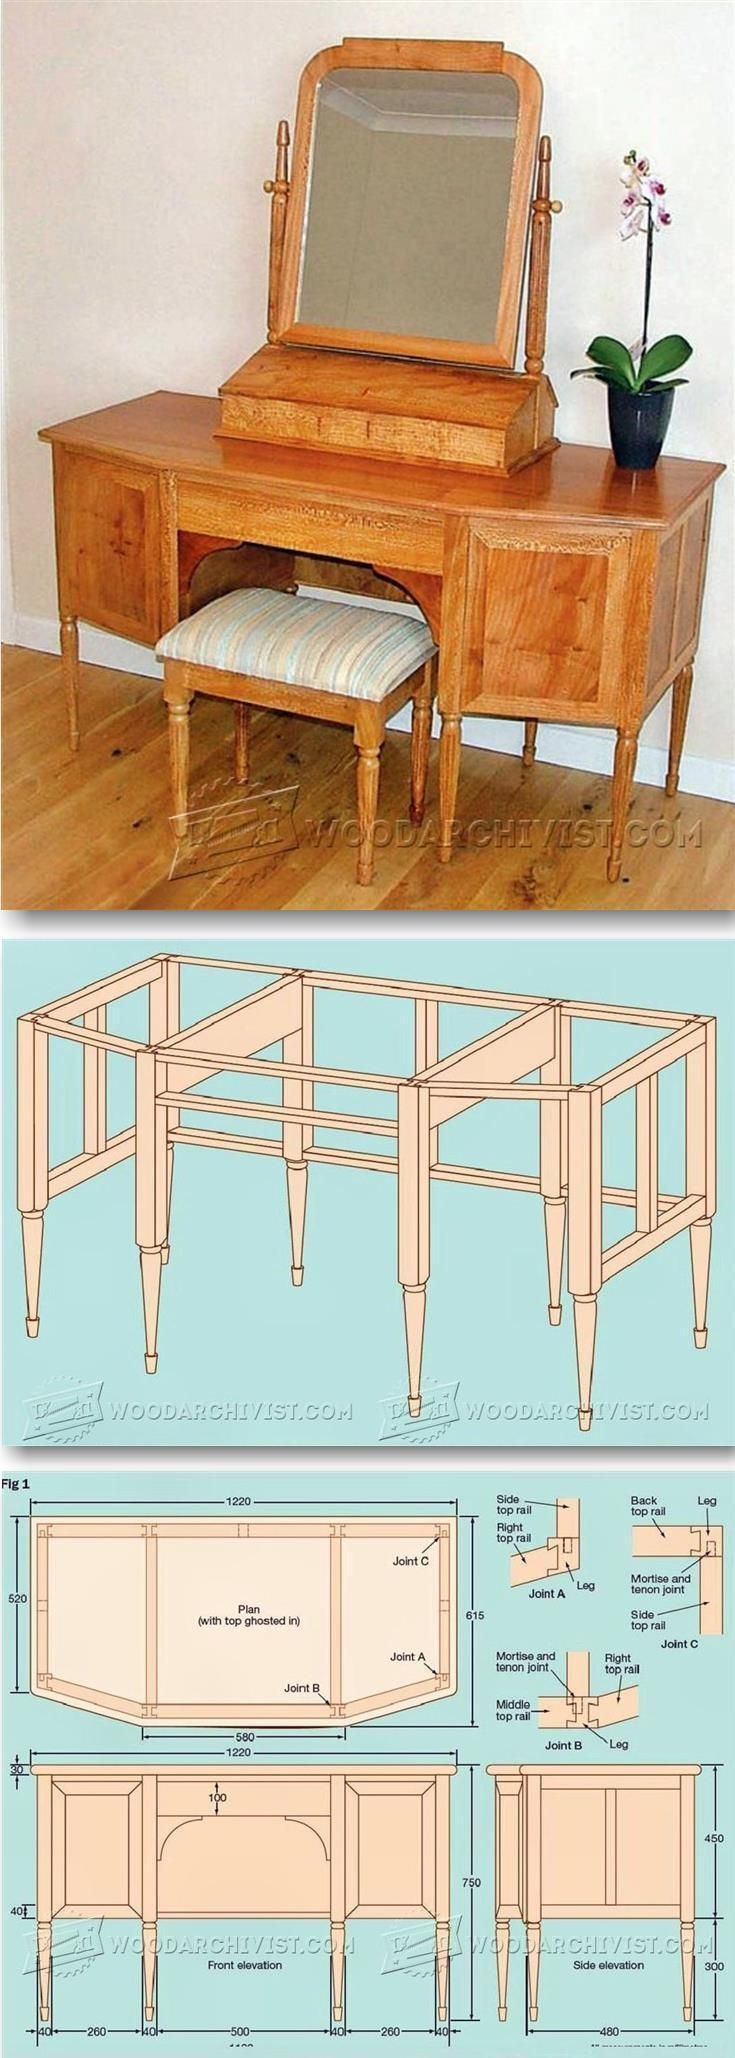 Dressing Table Plans - Furniture Plans and Projects | WoodArchivist.com